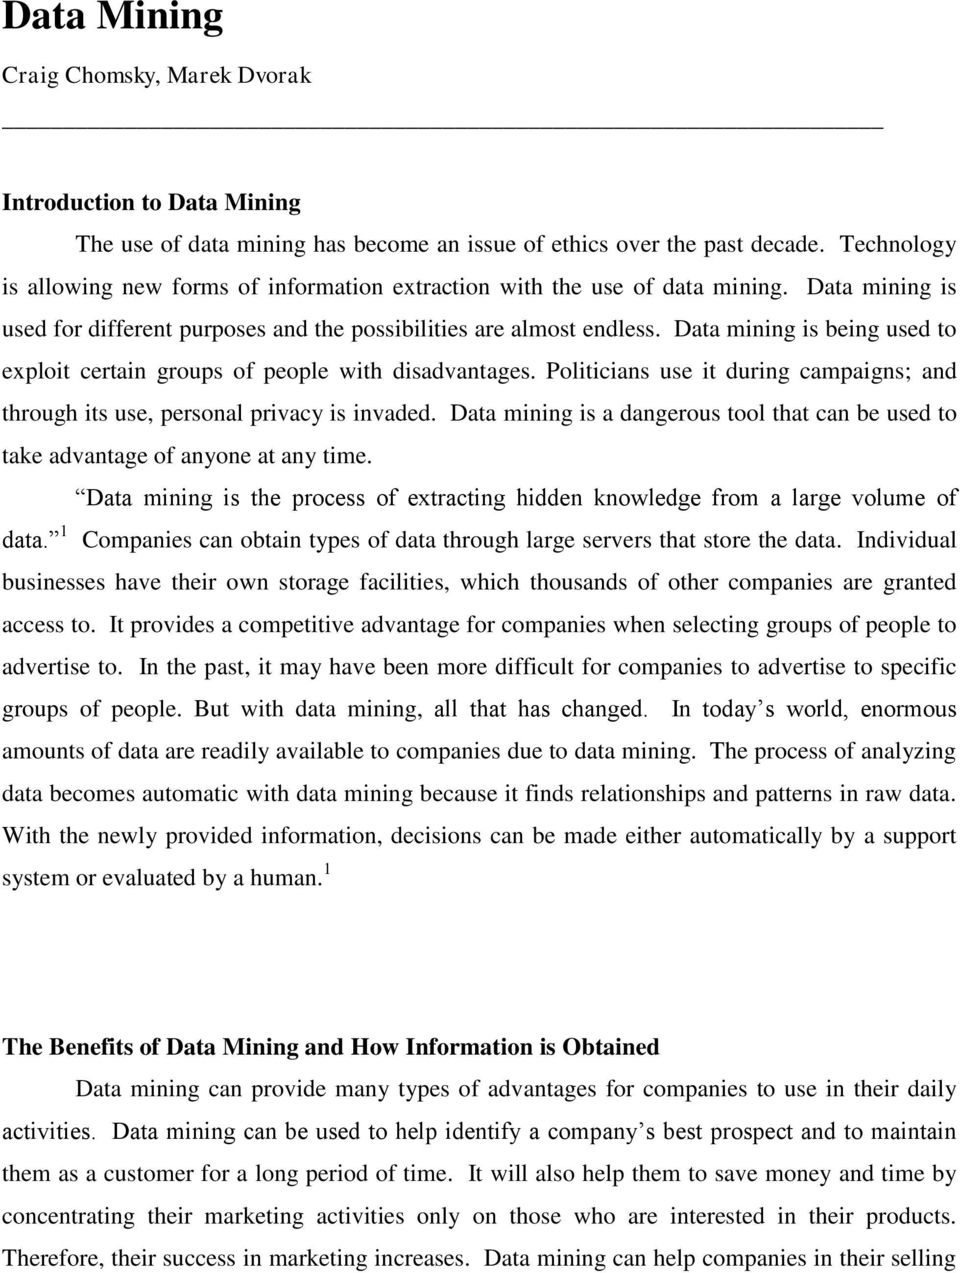 Data mining is being used to exploit certain groups of people with disadvantages. Politicians use it during campaigns; and through its use, personal privacy is invaded.